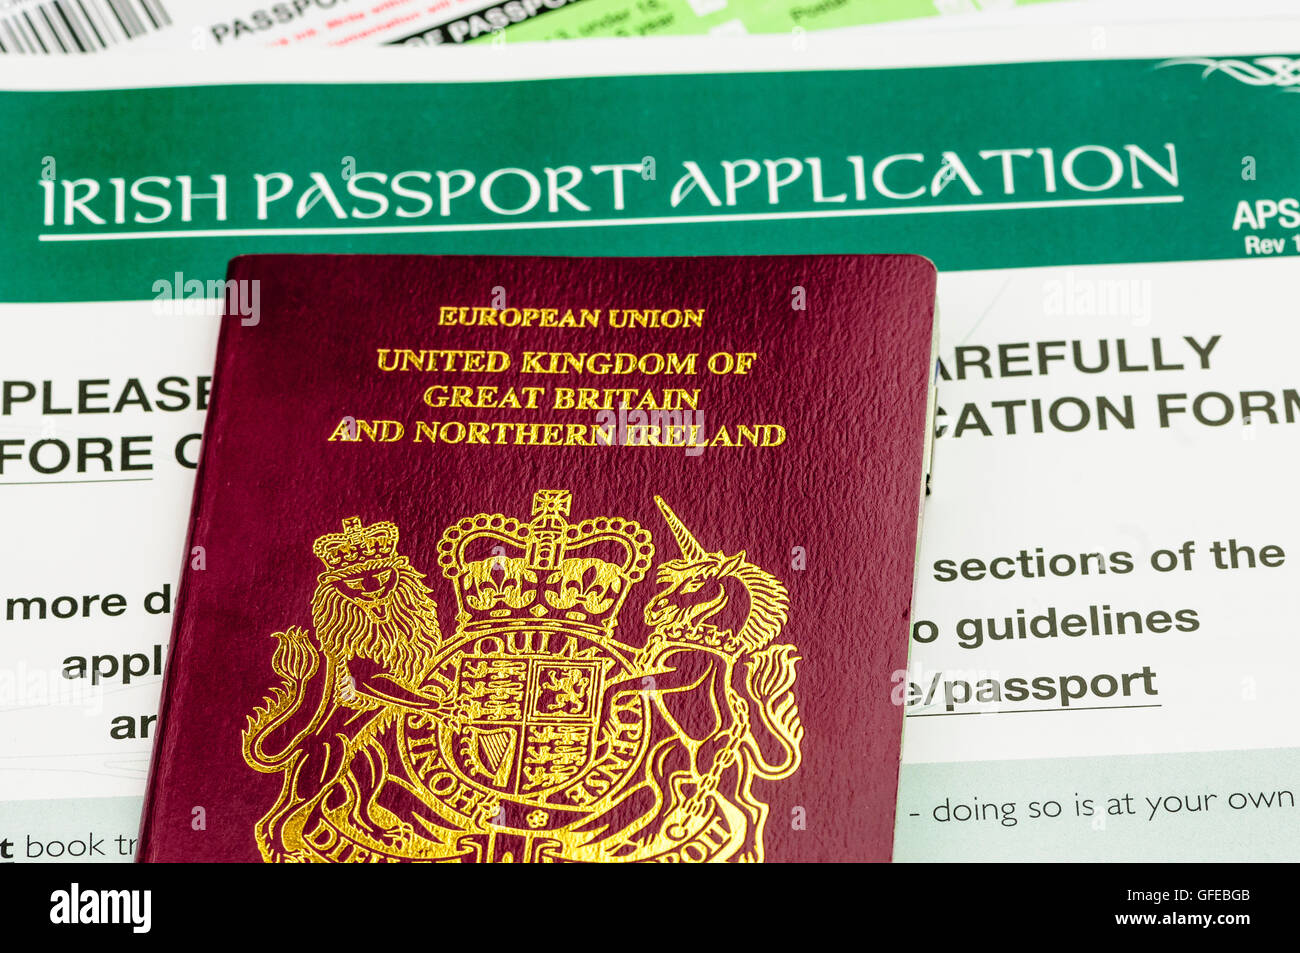 British Passport Application Form To Print, Passport For The United Kingdom Of Great Britain And Northern Ireland On An Application Form For An Irish Passport, British Passport Application Form To Print